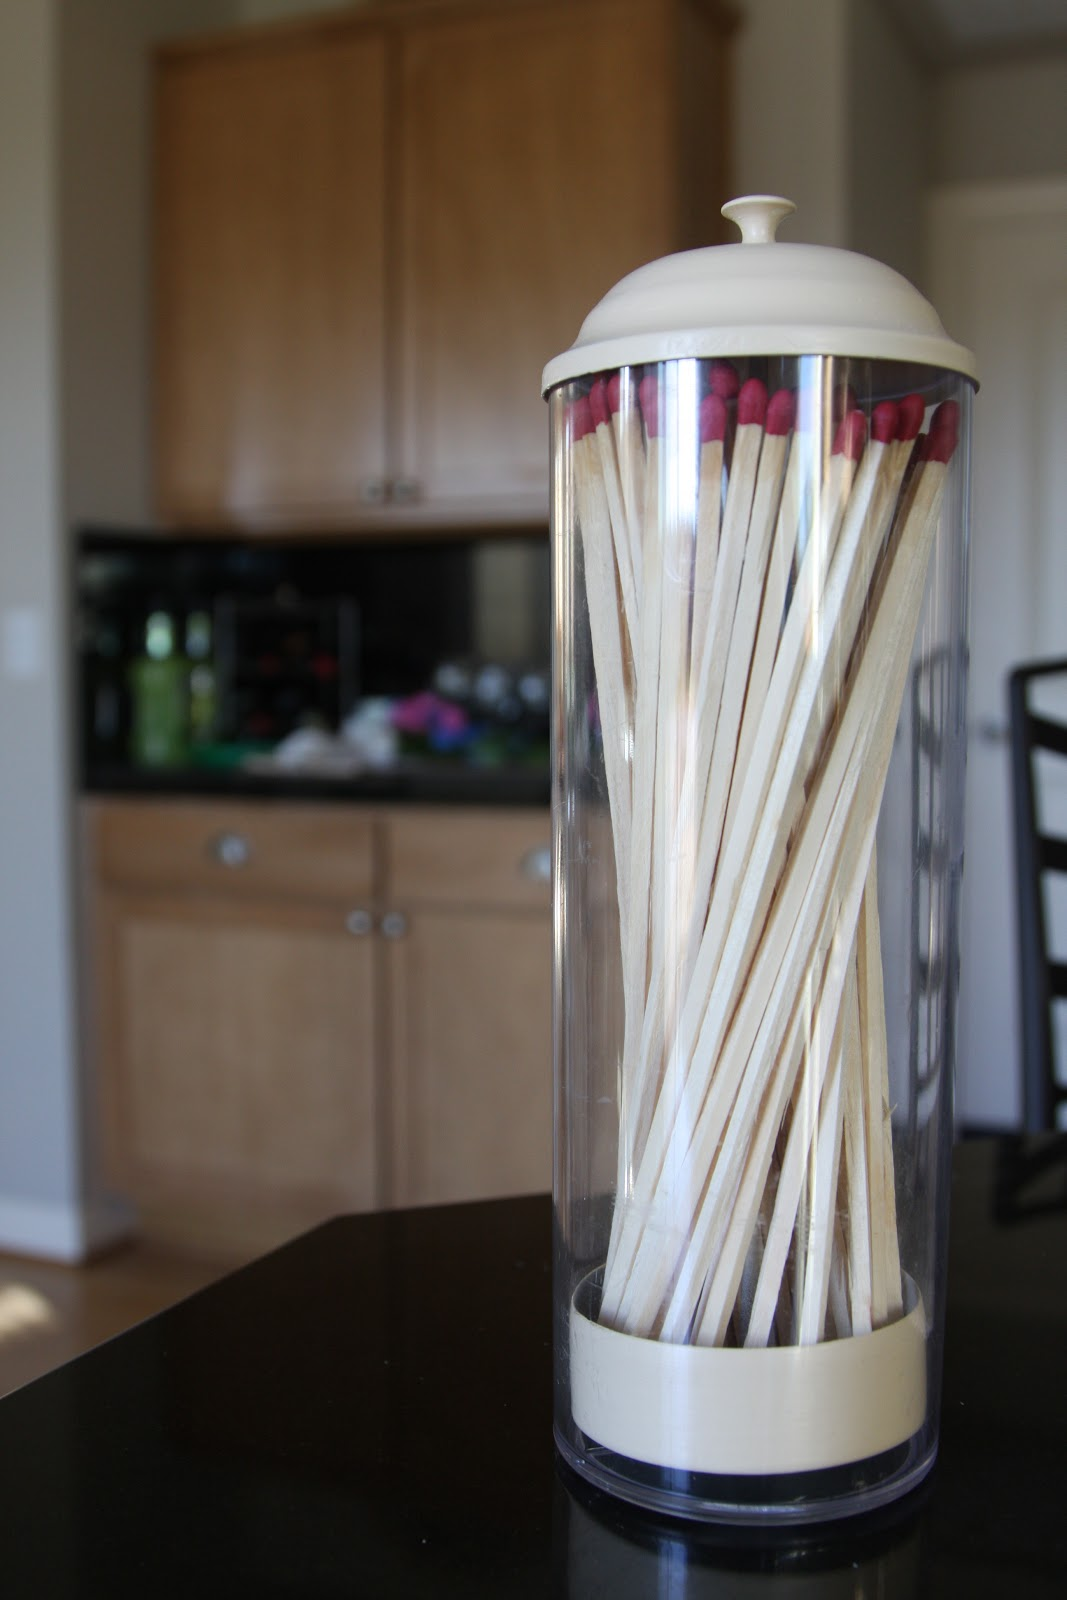 Straws are shorter than fireplace matches | b3 Home Designs